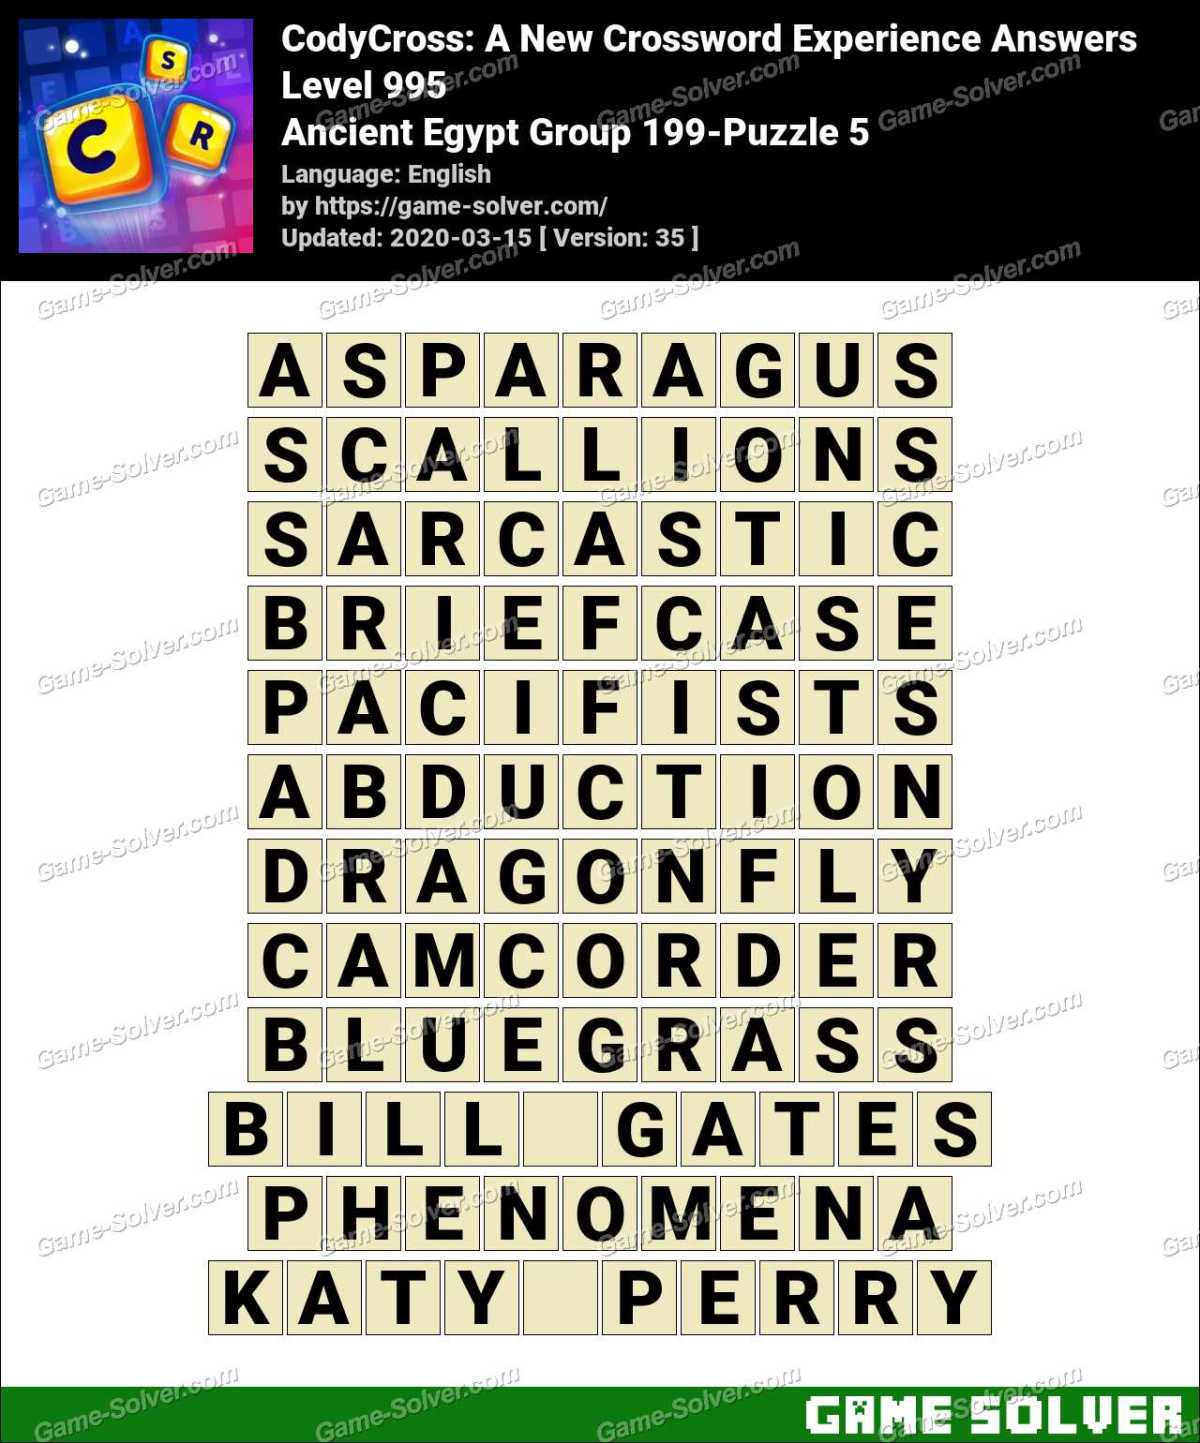 CodyCross Ancient Egypt Group 199-Puzzle 5 Answers